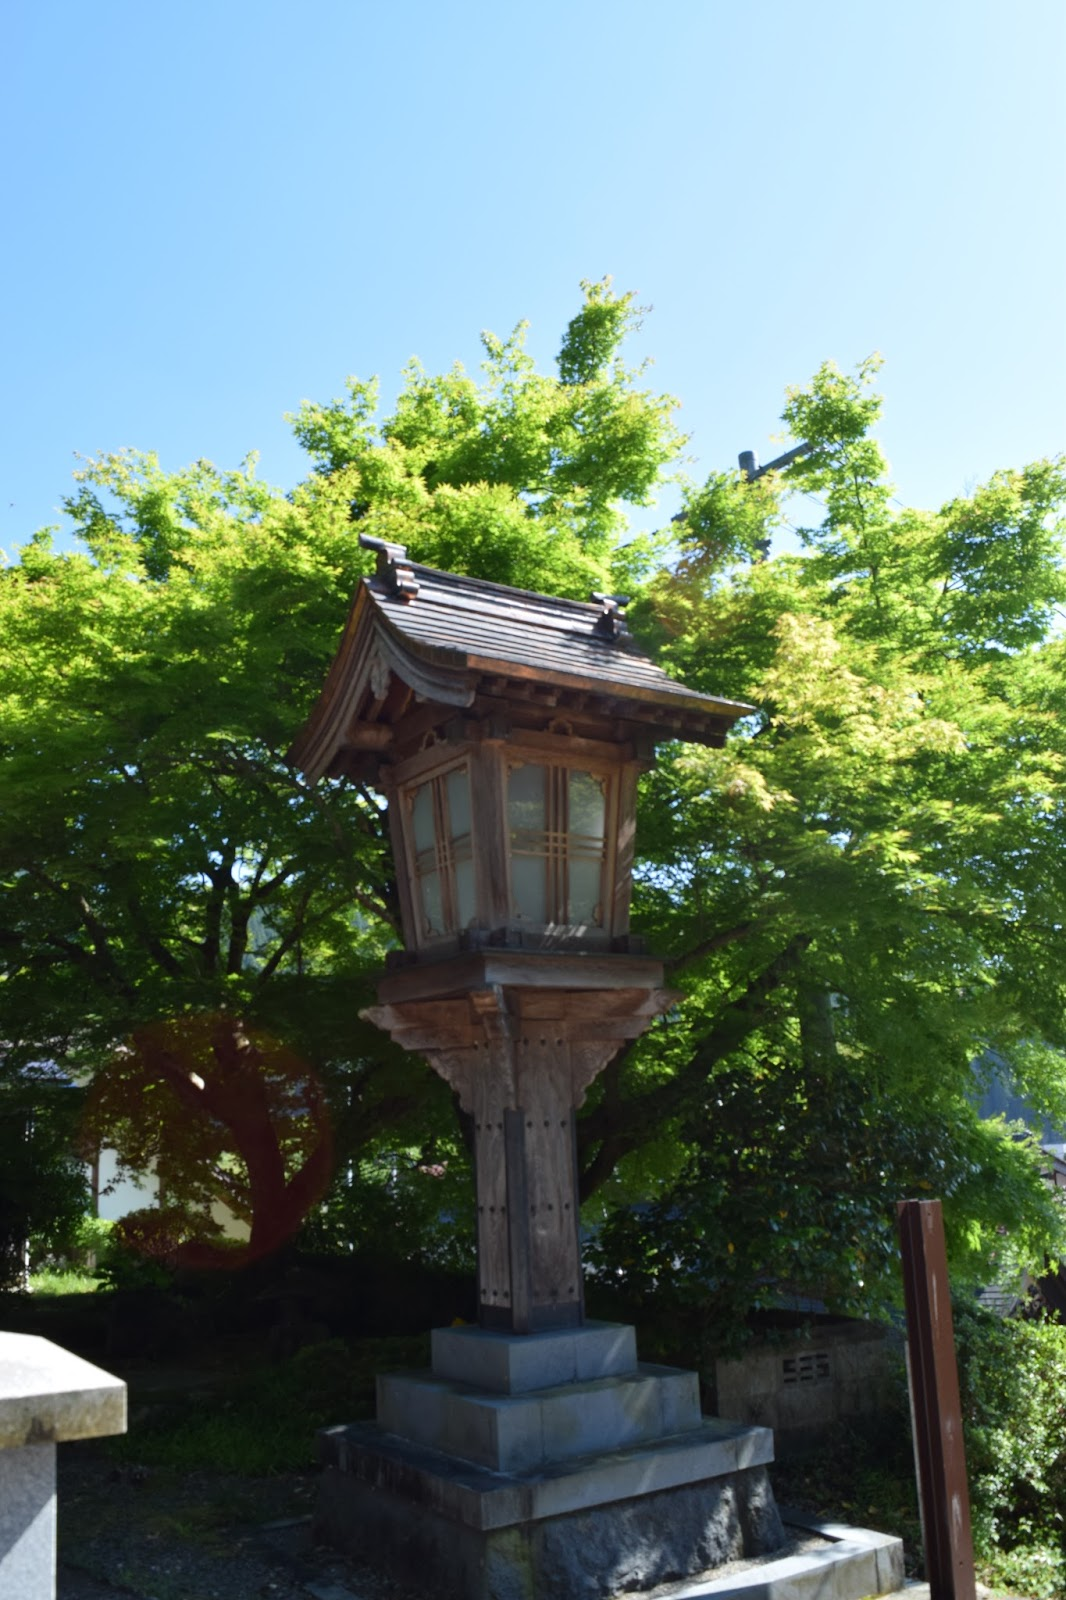 Gujou Hachiman Shrine